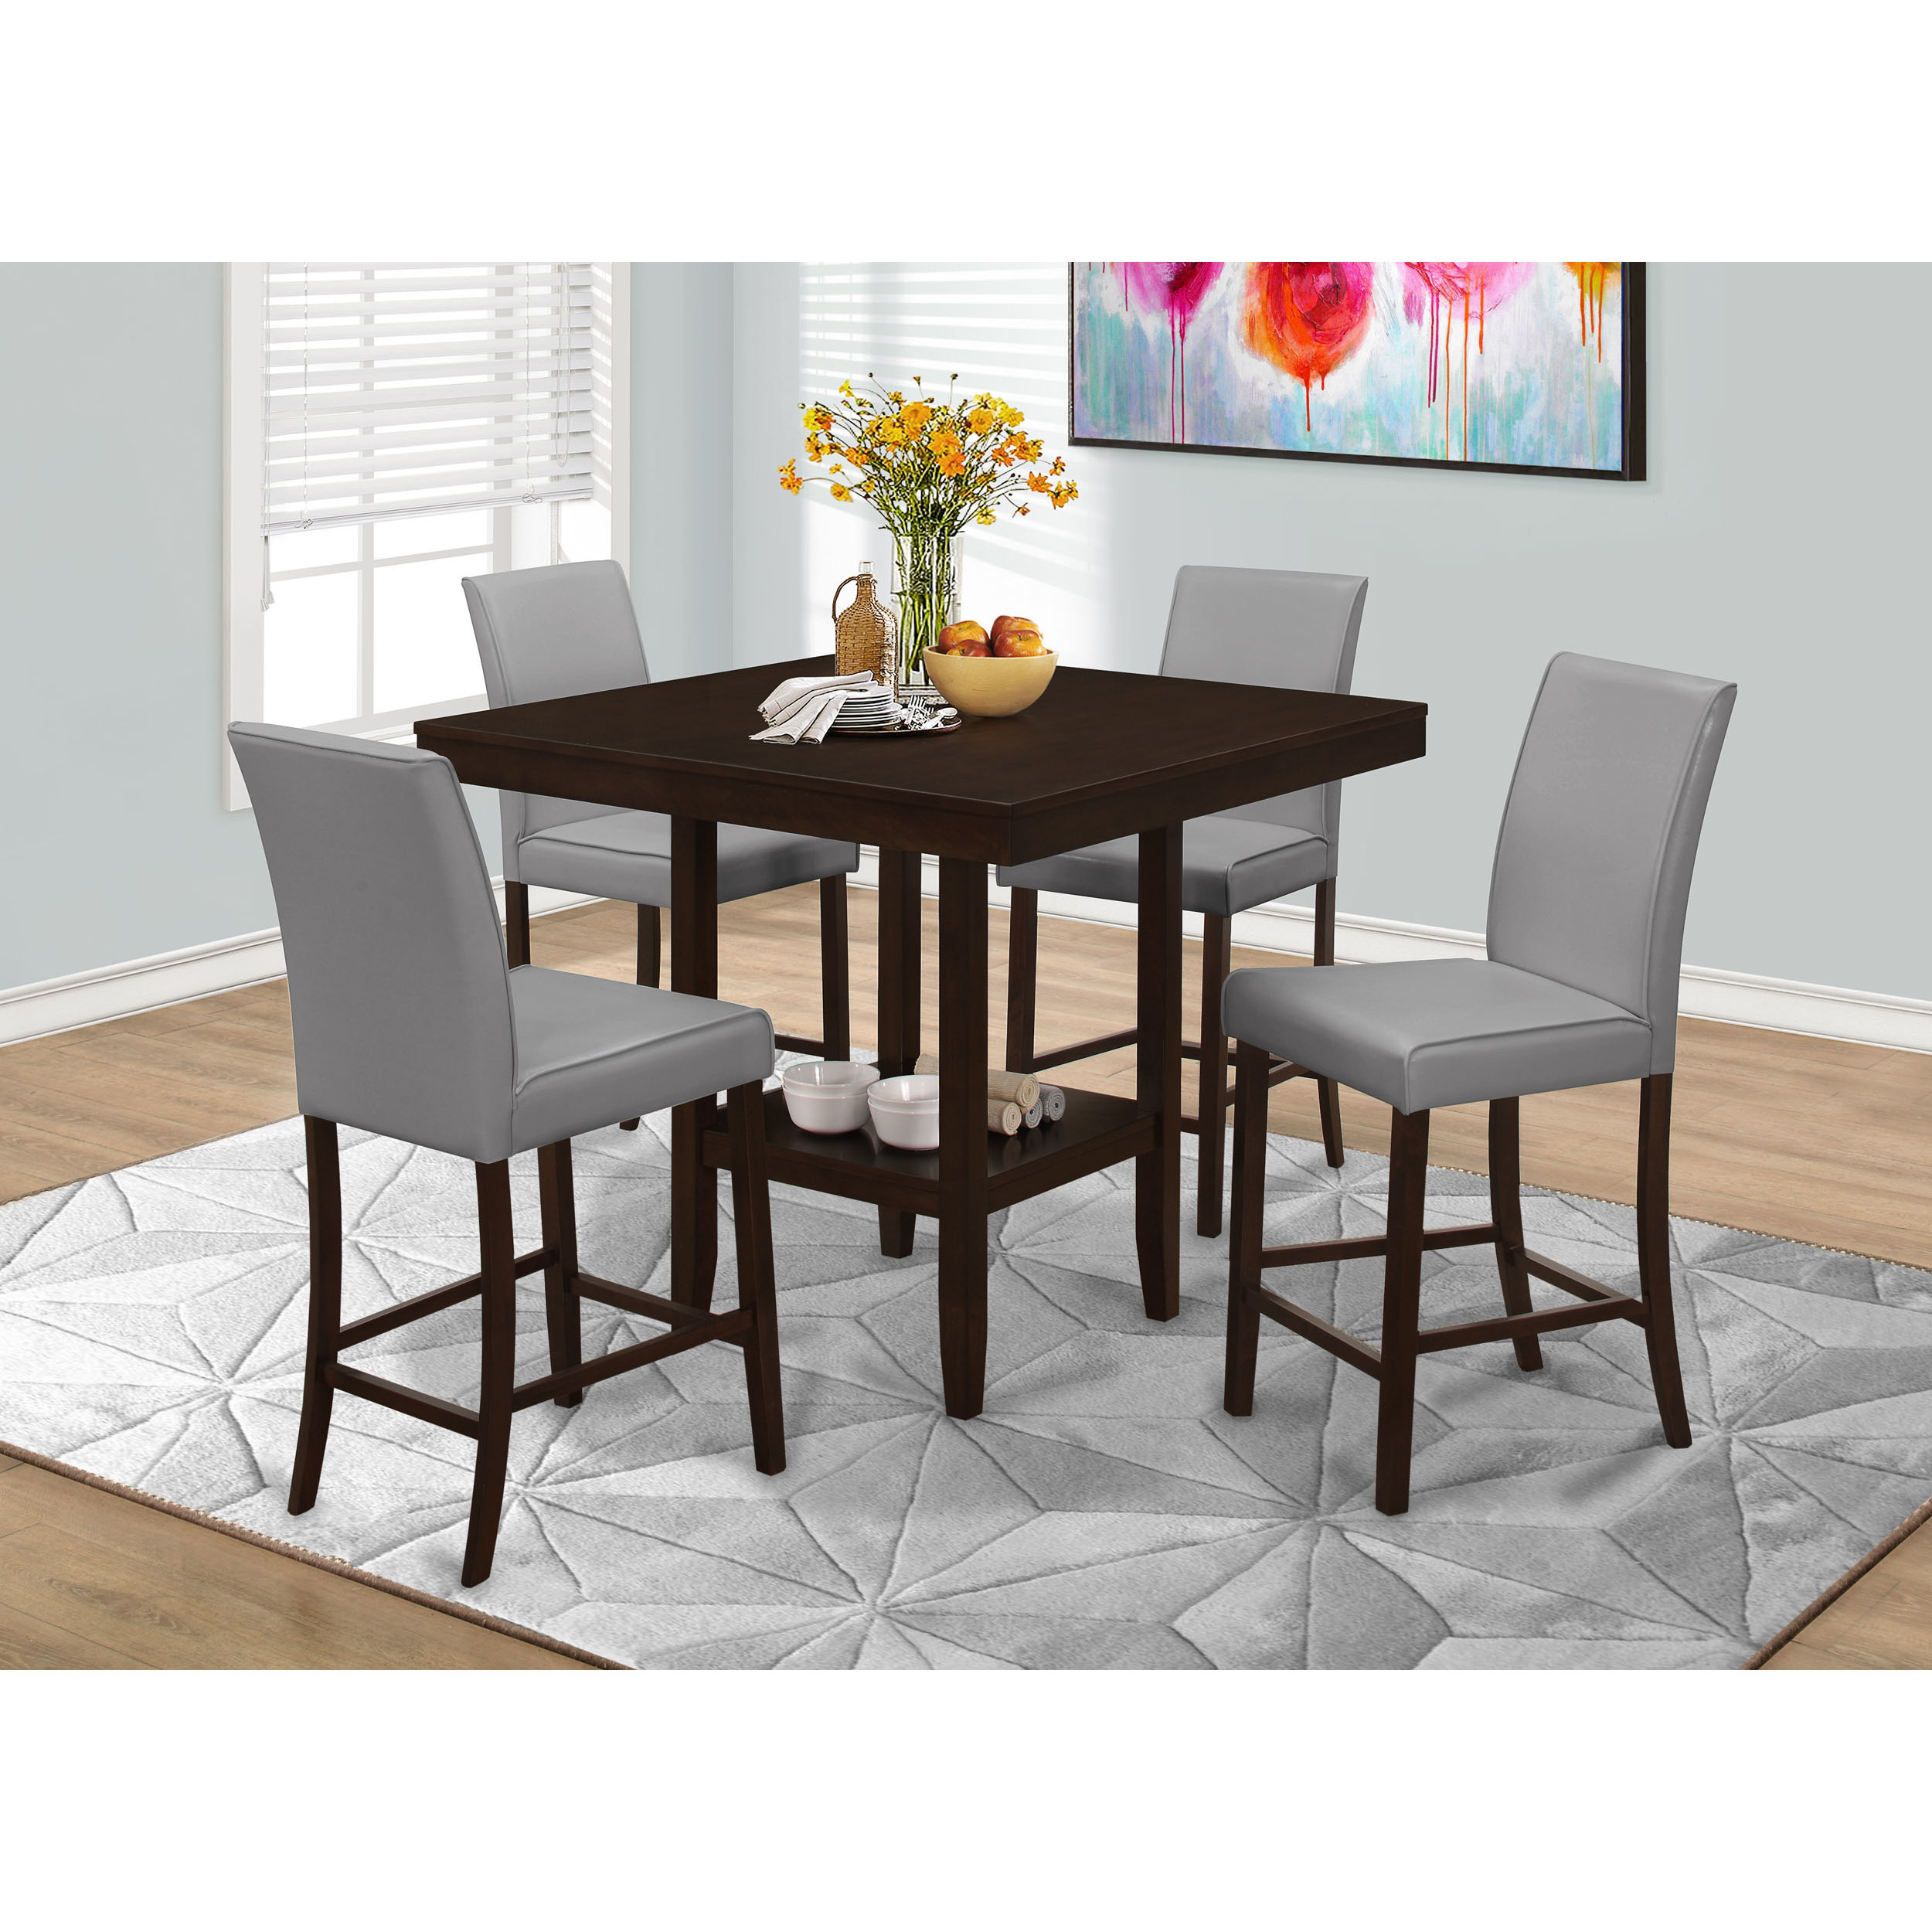 Best ideas about Bar Height Dining Table . Save or Pin Monarch Specialties Inc Counter Height Dining Table Now.